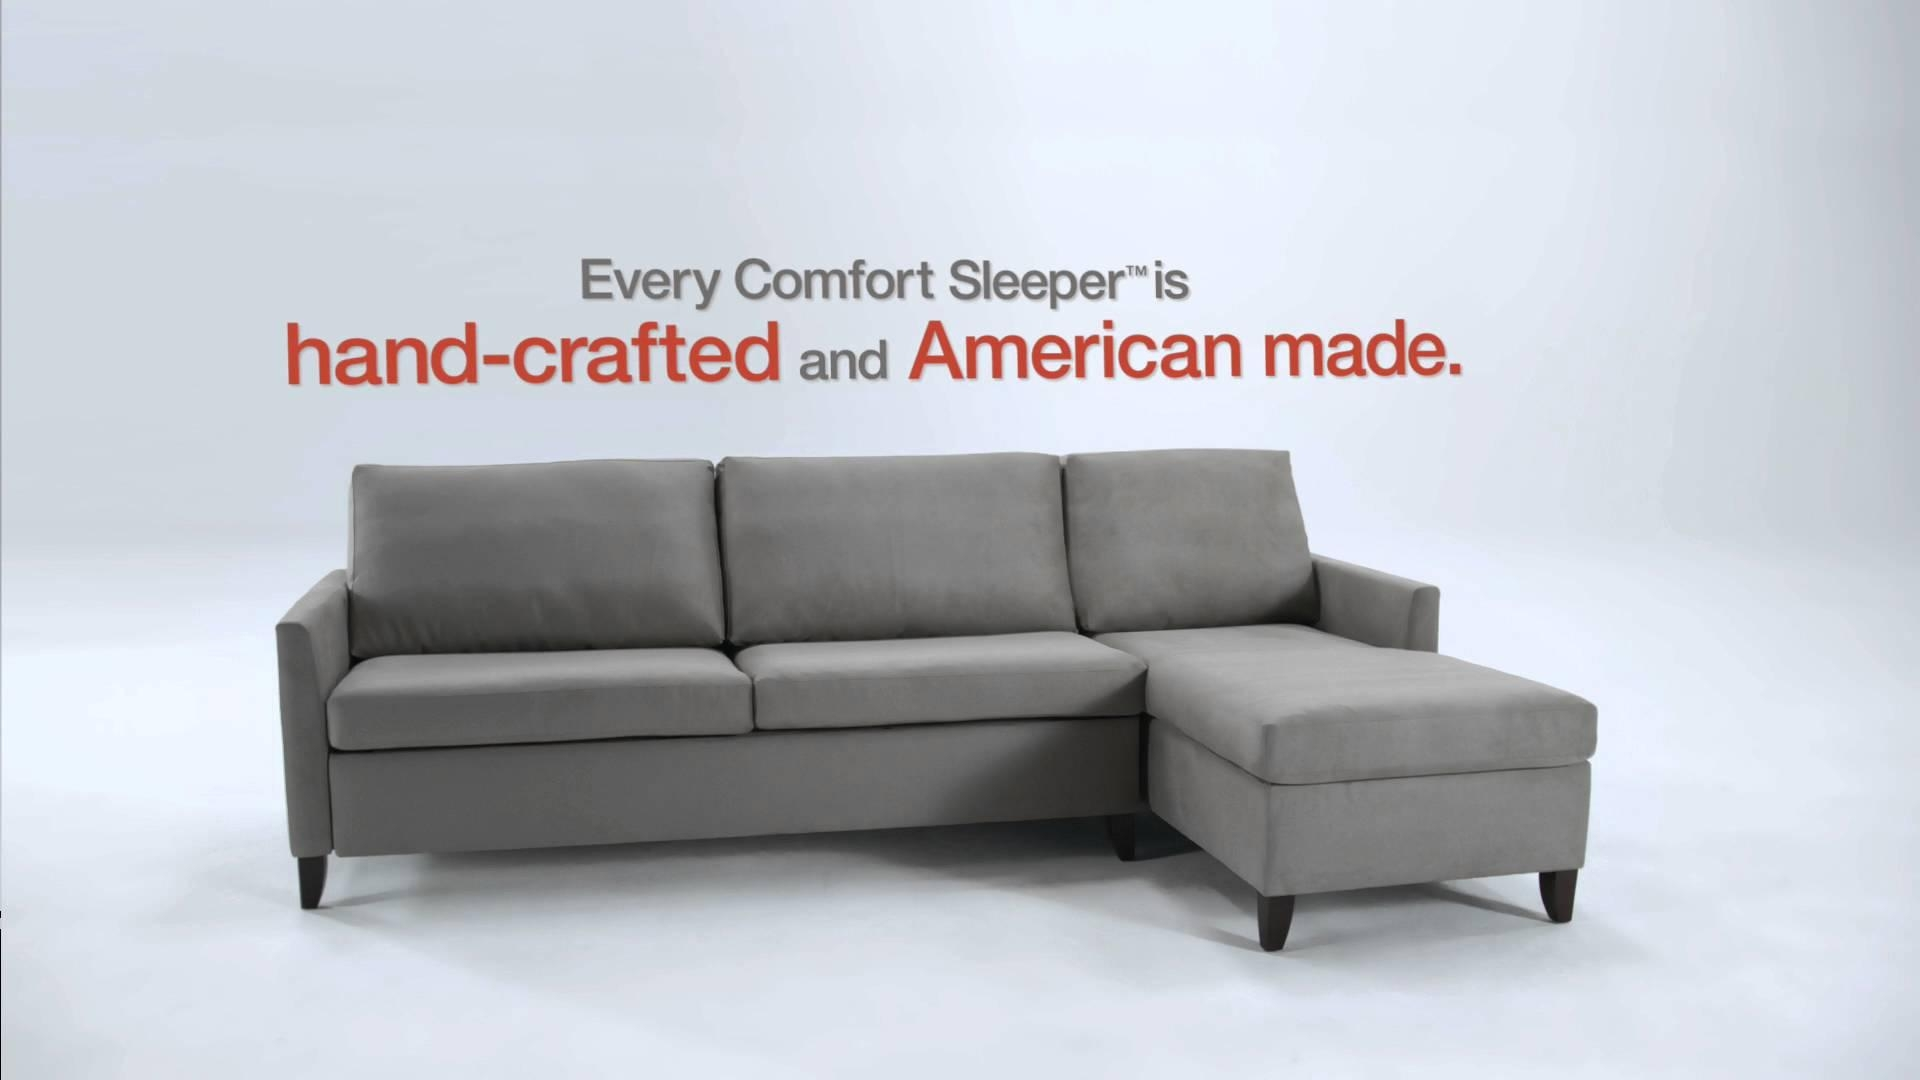 American Leather Comfort Sleeper (View 9 of 22)